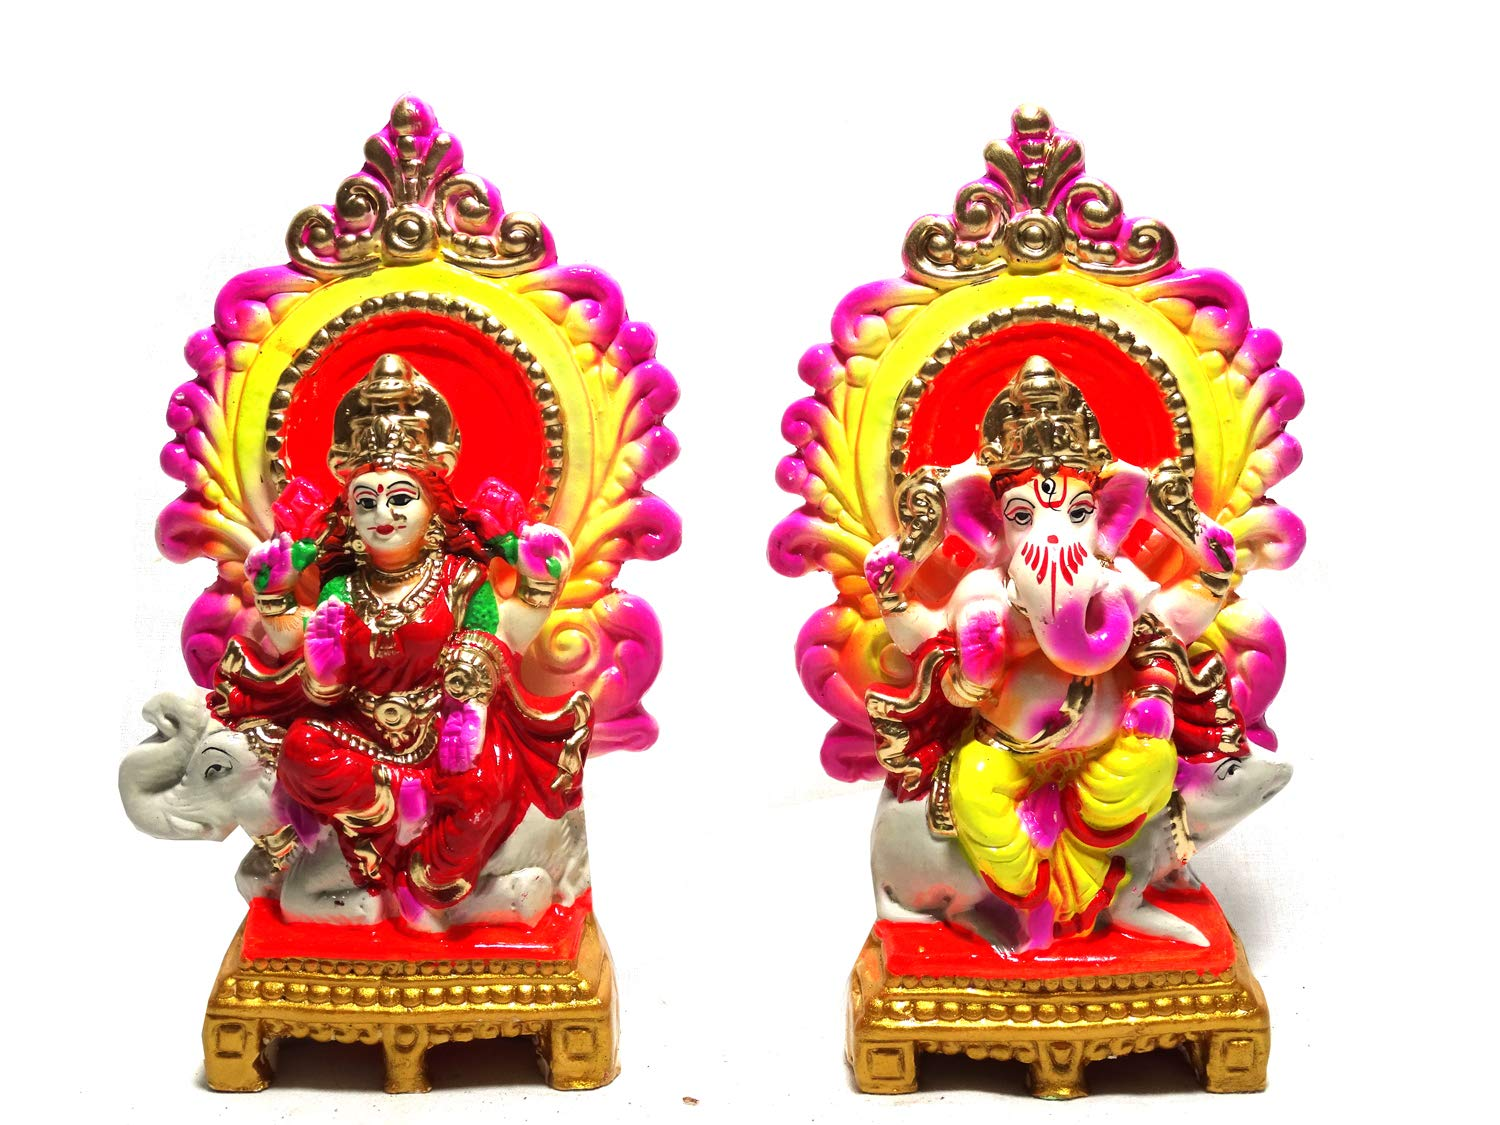 Buy Vinayaks Terracotta Clay Laxmi Ganesh Murti Idol Of Clay Mitti For Diwali Puja Lakshmi On Elephant And Ganesh A On Rat With Aasan Size Lxbxh 4x10x17 Cm Each Online At Low